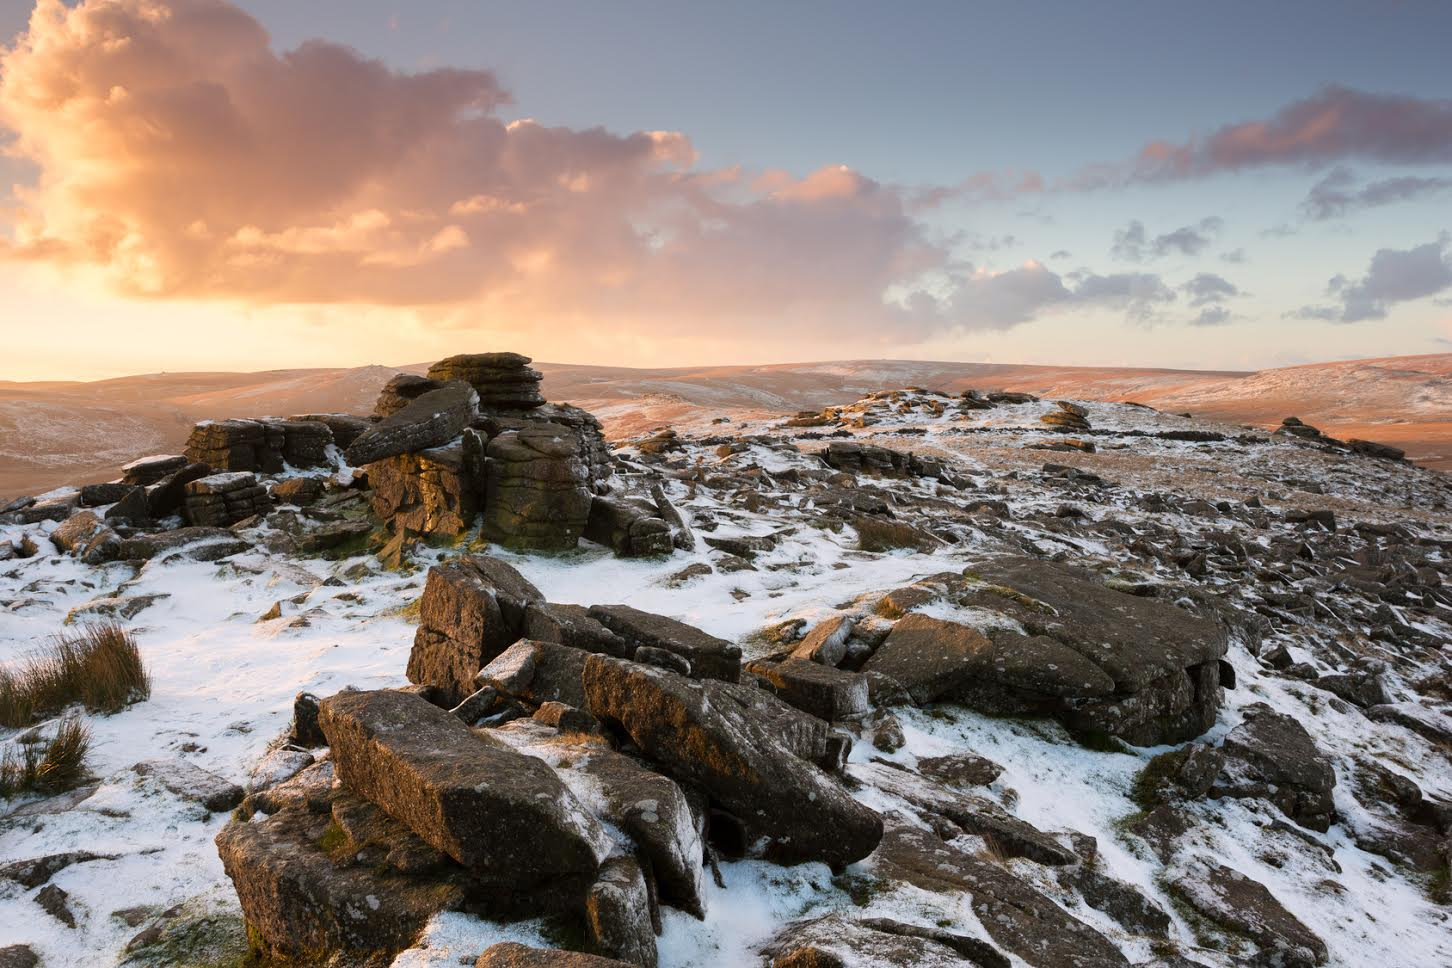 5 Spectacular British Winter Walks: Mountain Walking to Seaside Strolls